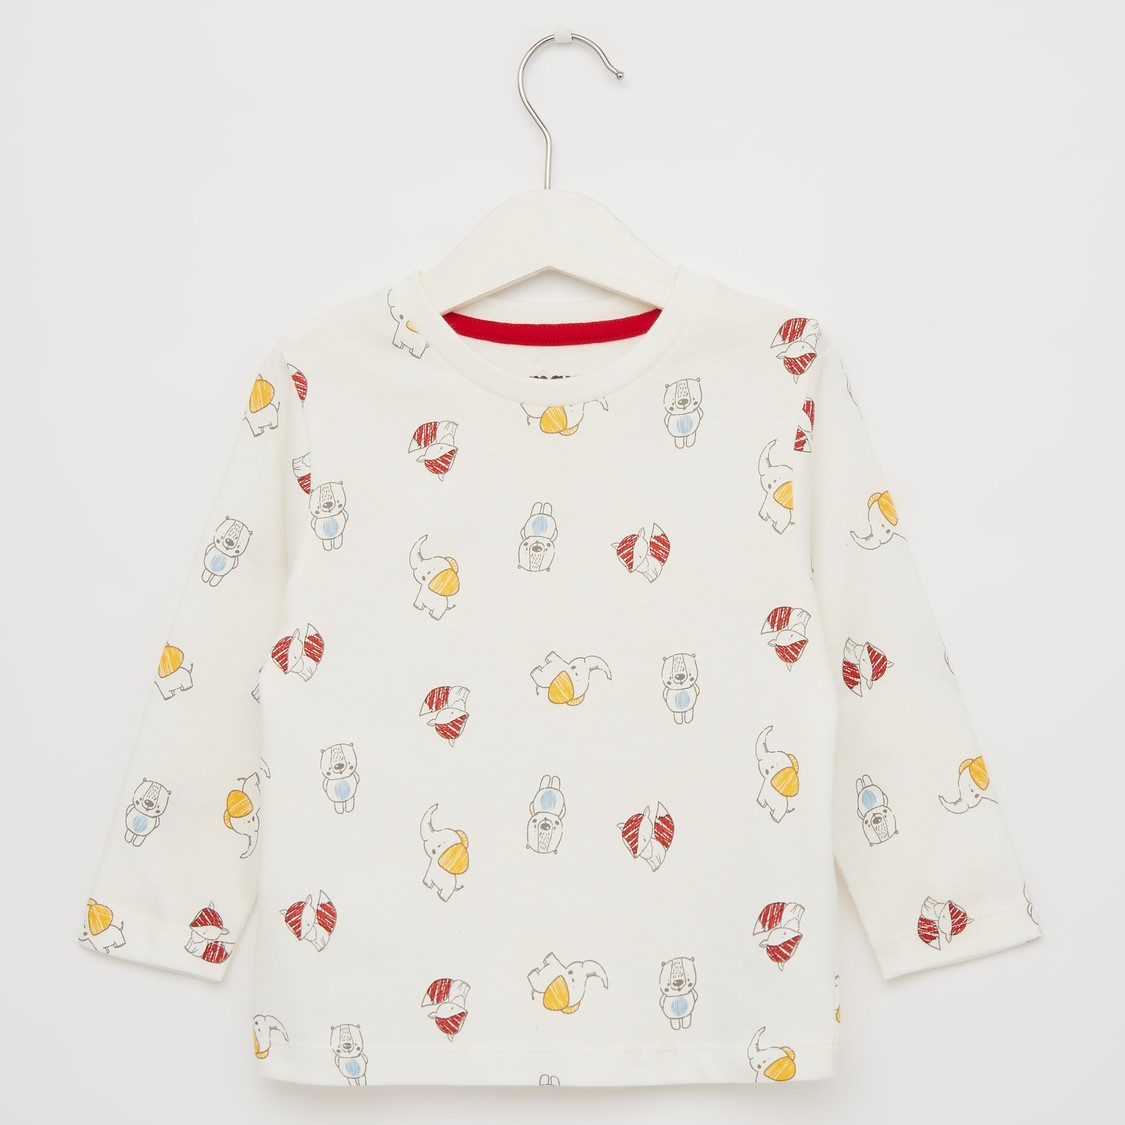 All Over Print Round Neck T-shirt with Long Sleeves